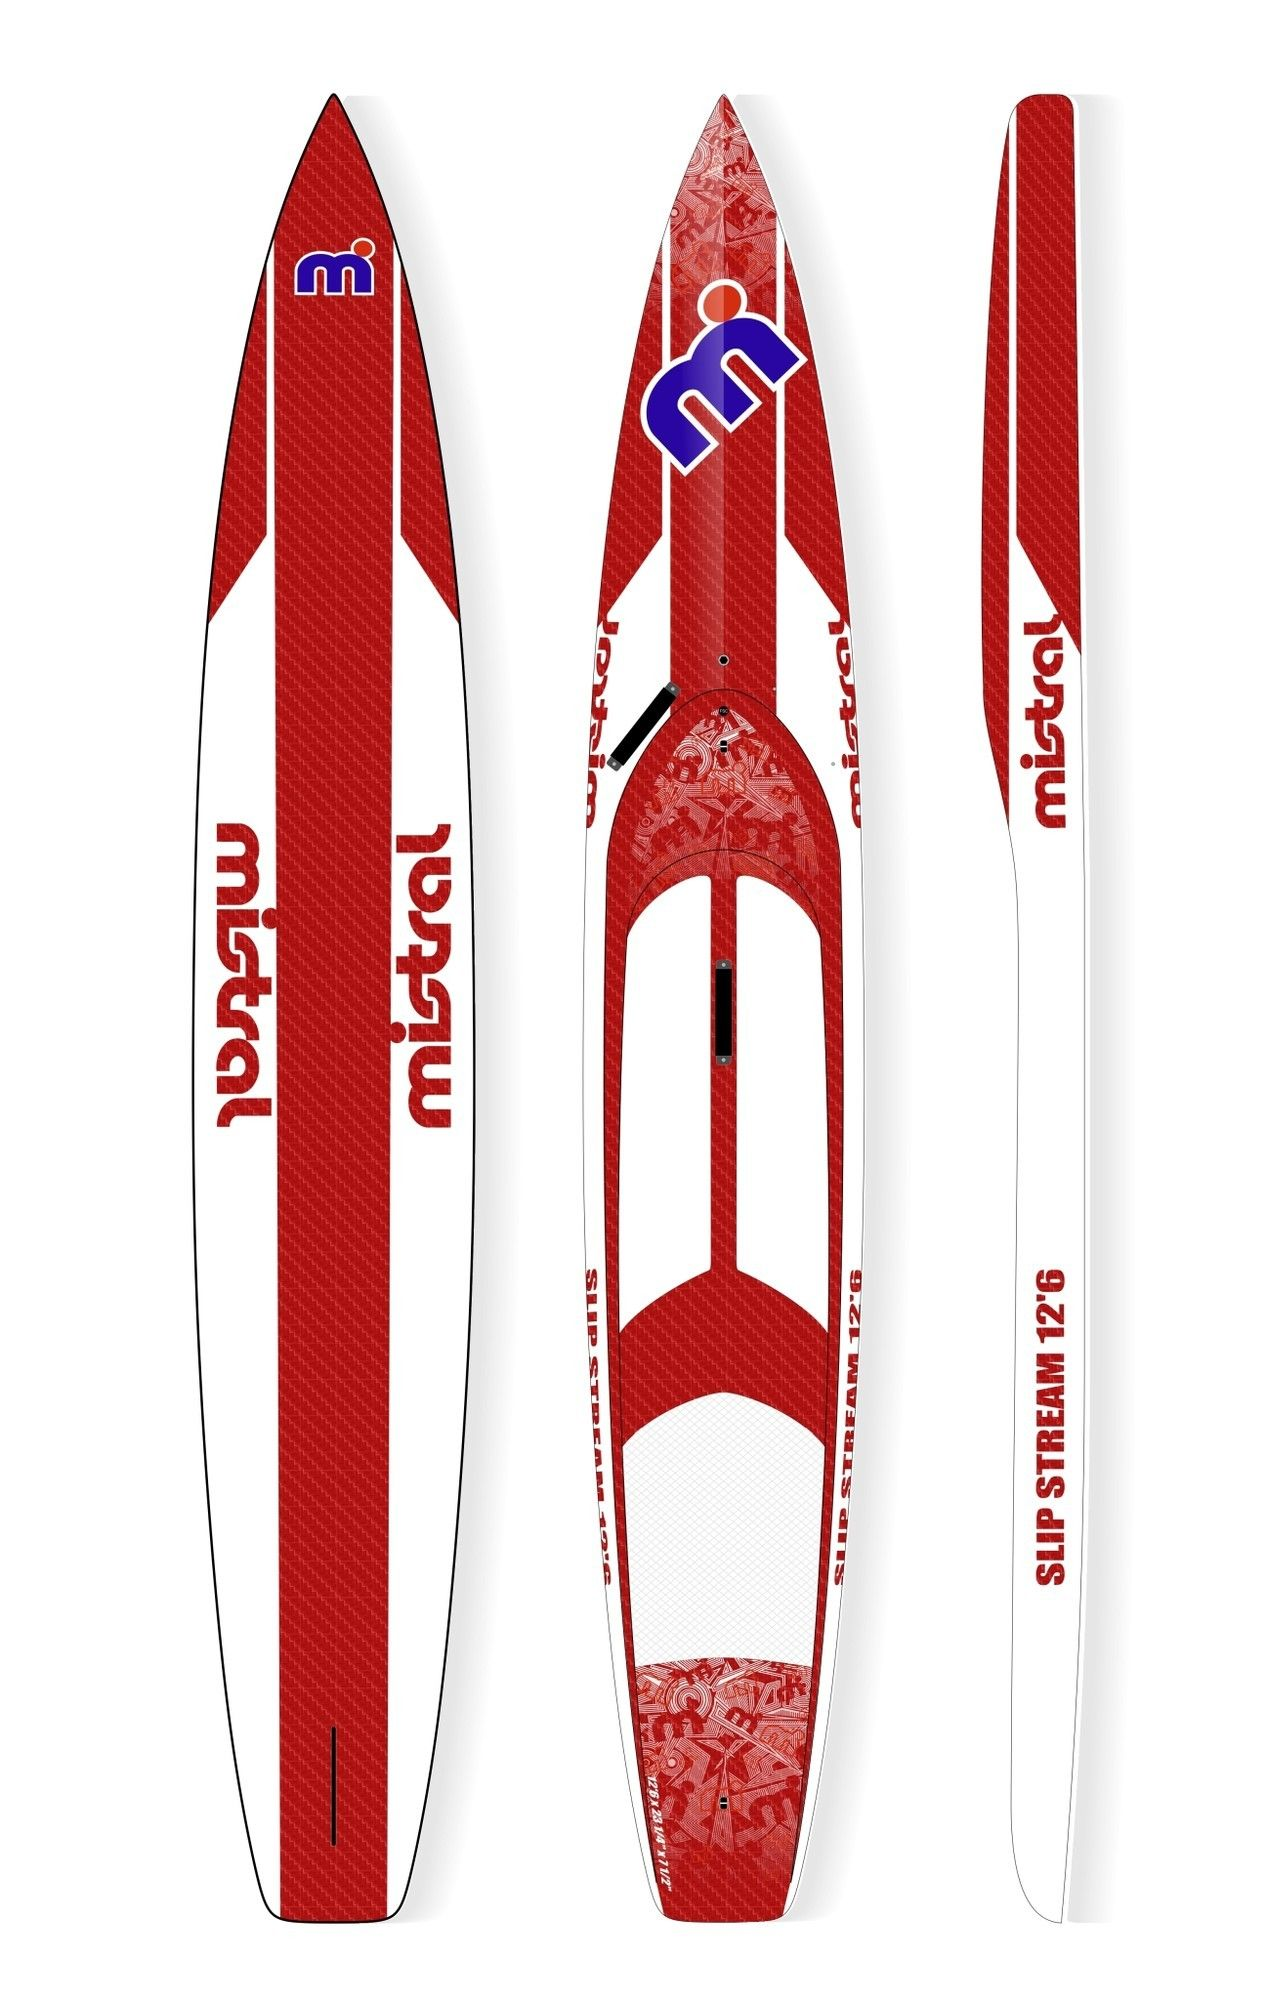 Mistral Slipstream Carbon 12'6